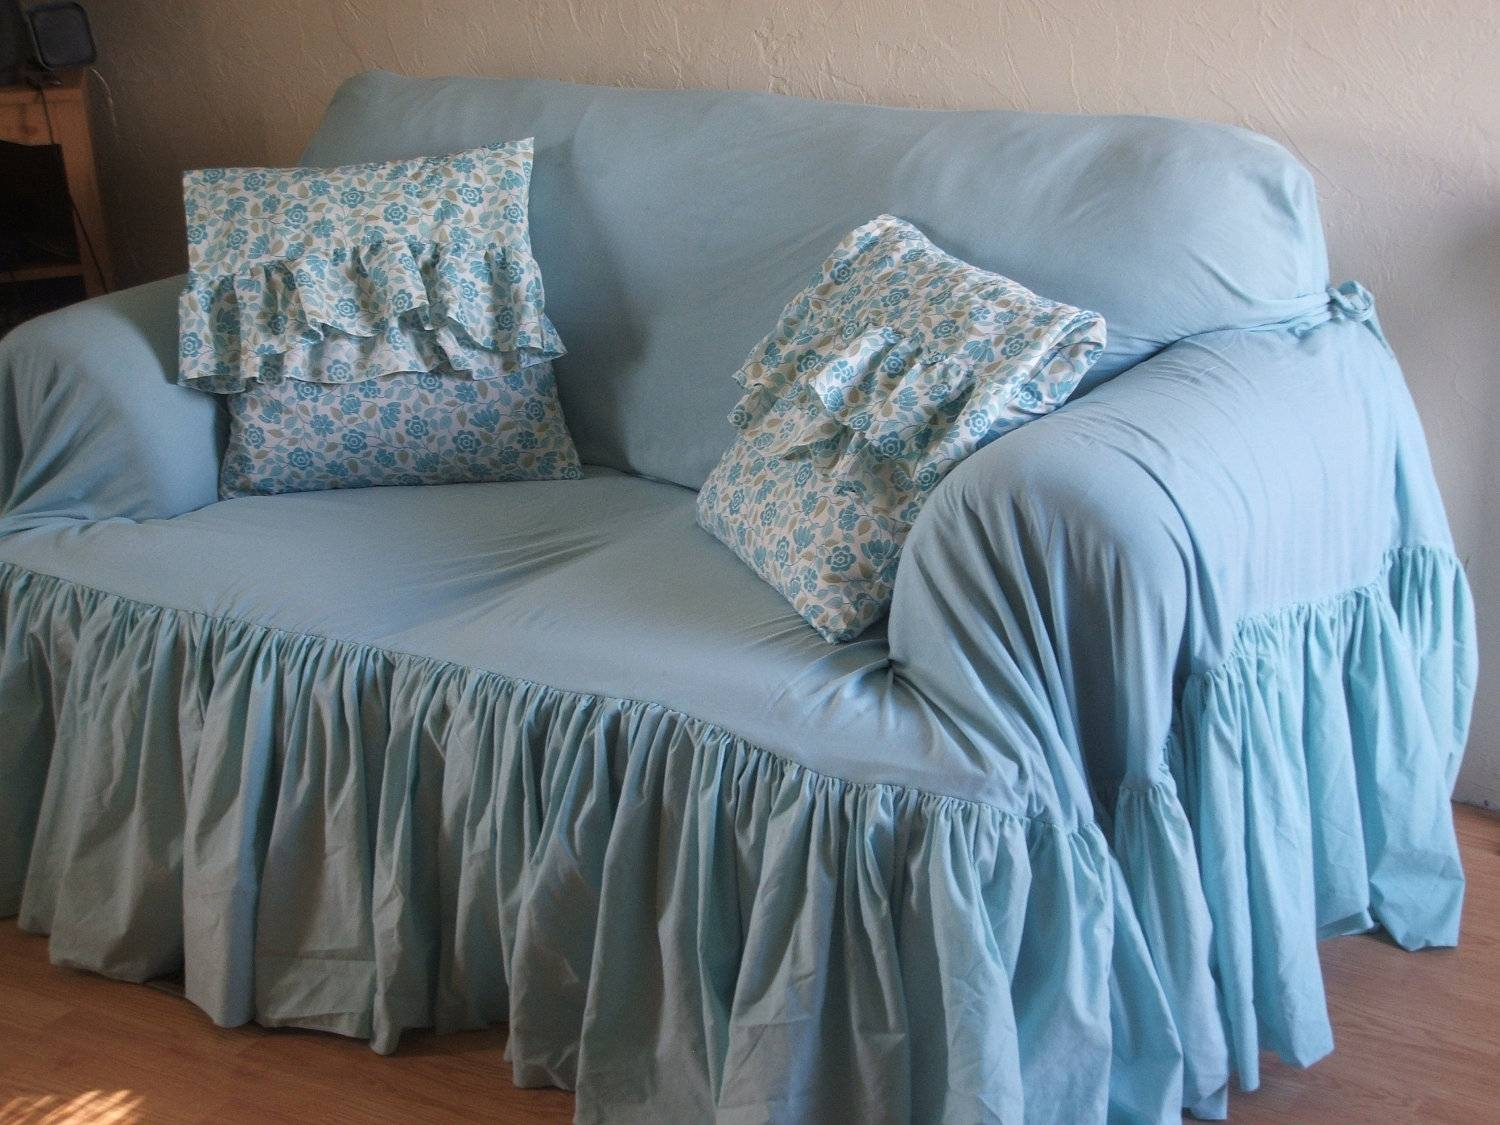 Furniture: Update Your Living Room With Best Sofa Slipcover Design throughout Teal Sofa Slipcovers (Image 8 of 30)